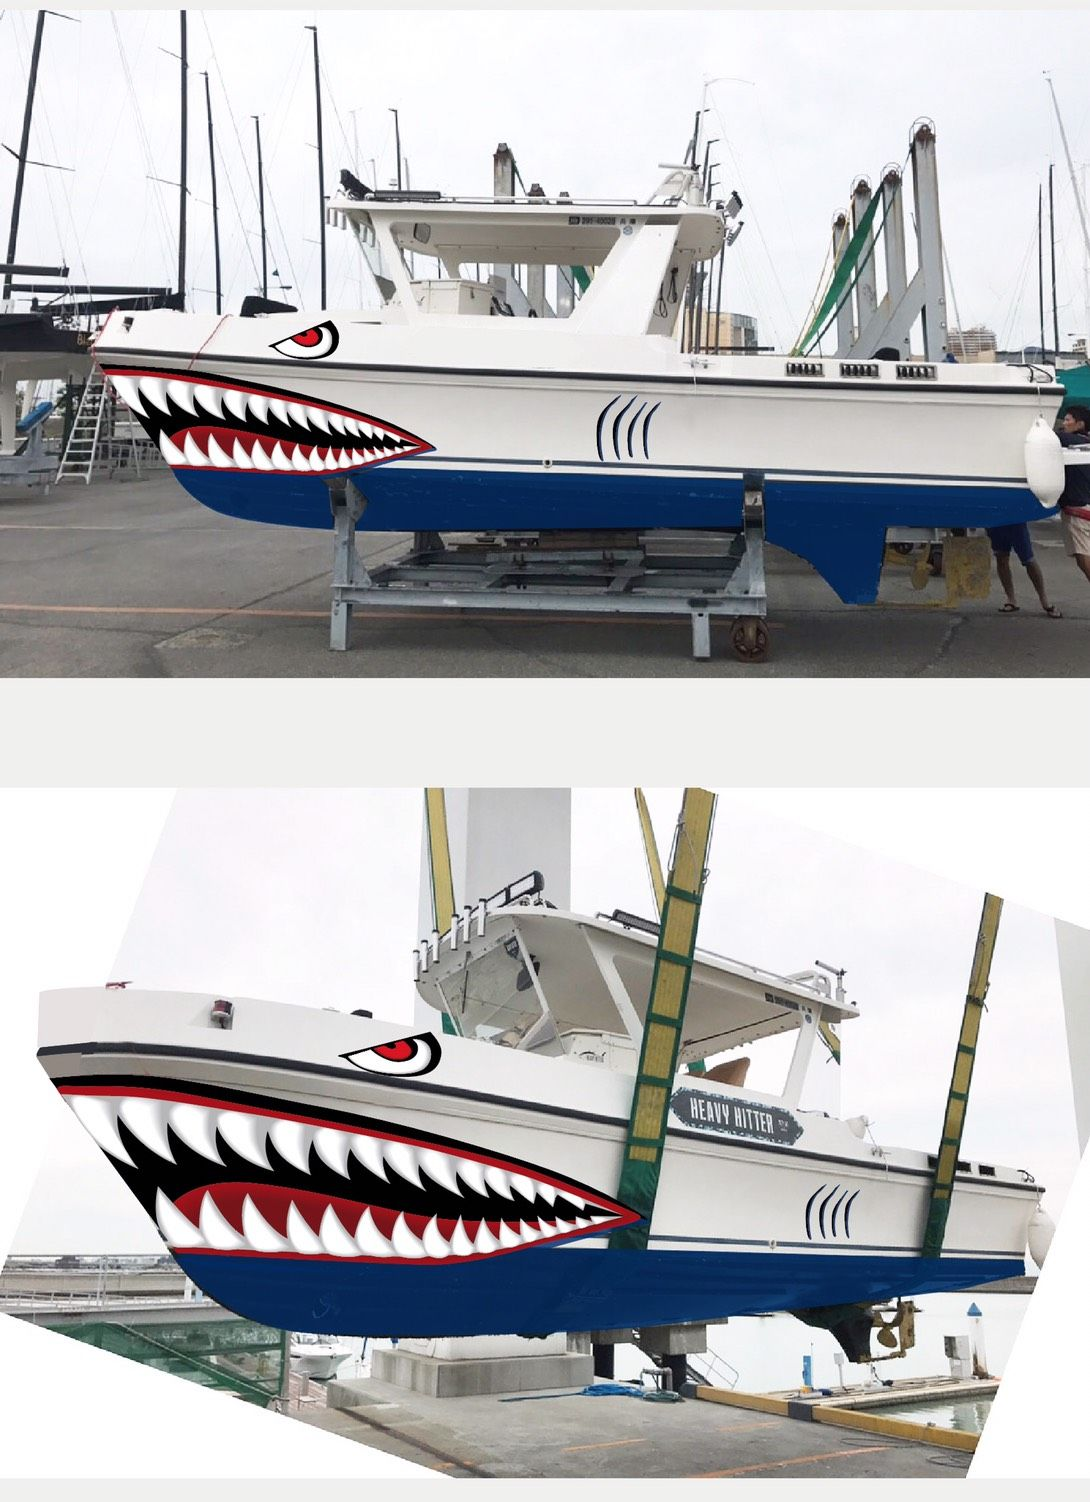 Pin By John Cook On The Hitman Lures Boat Building Pontoon Boat Boat Design